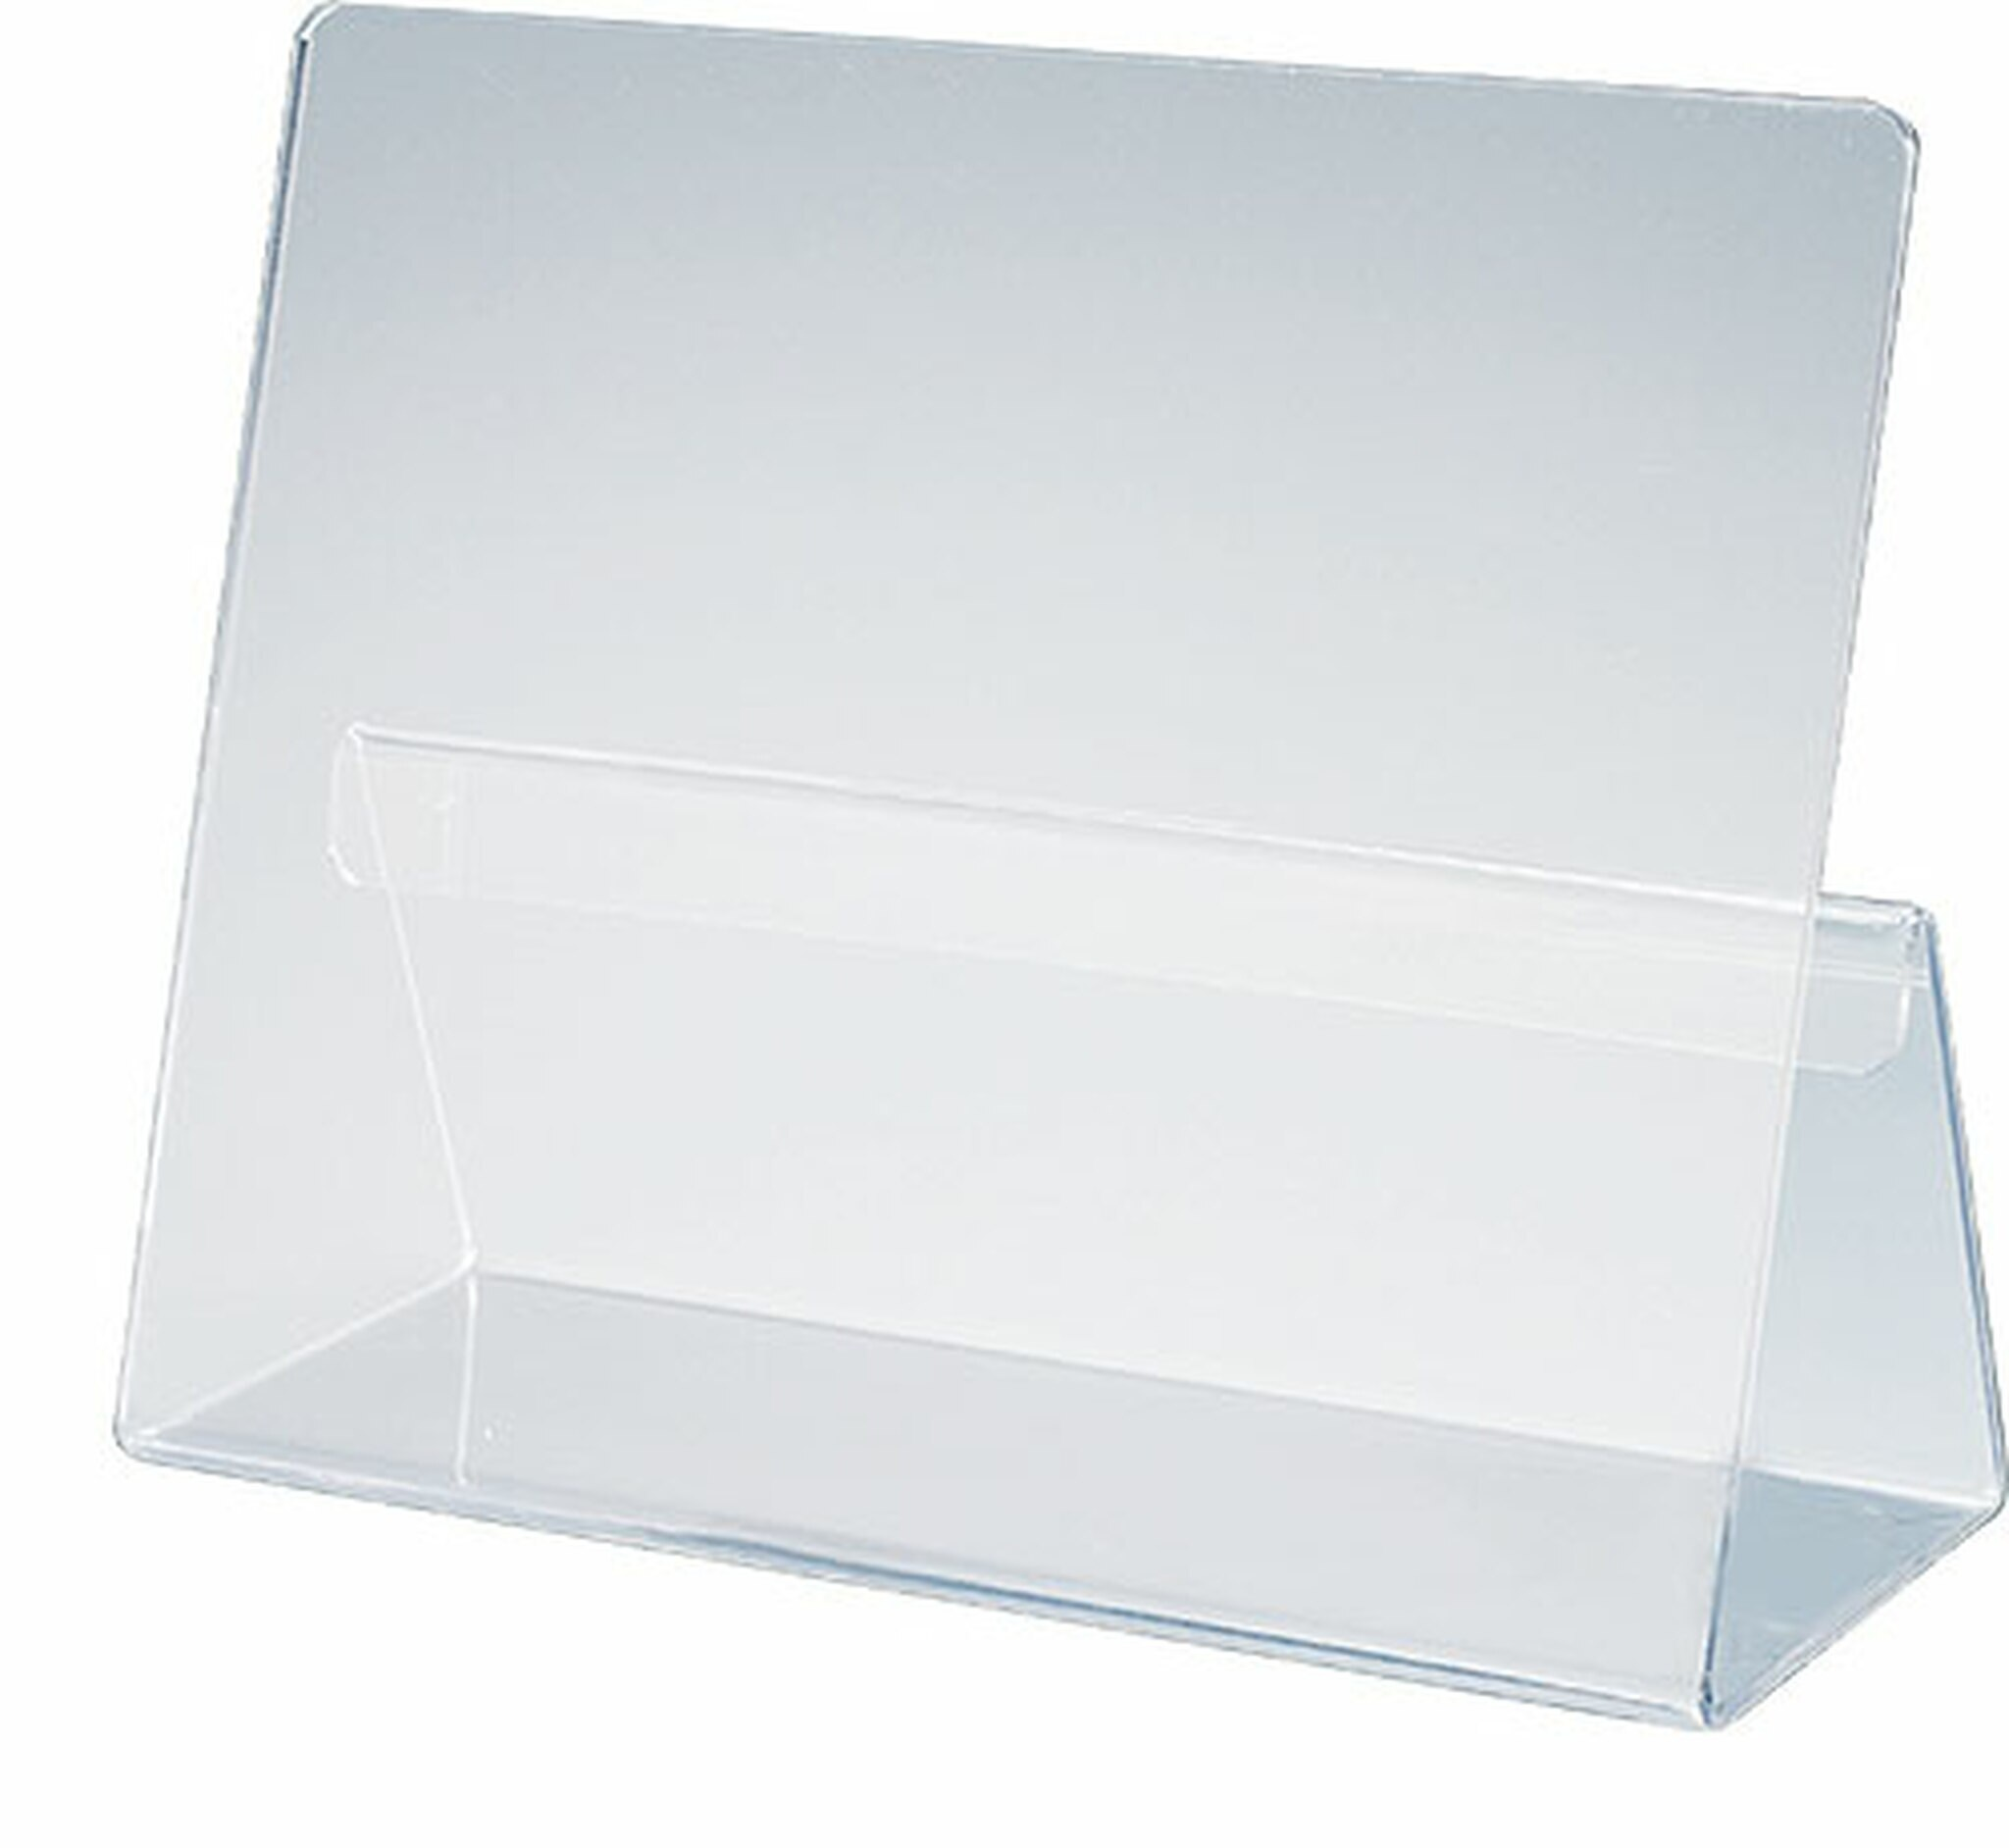 CLR CLEAR COOKBOOK HOLDER-1